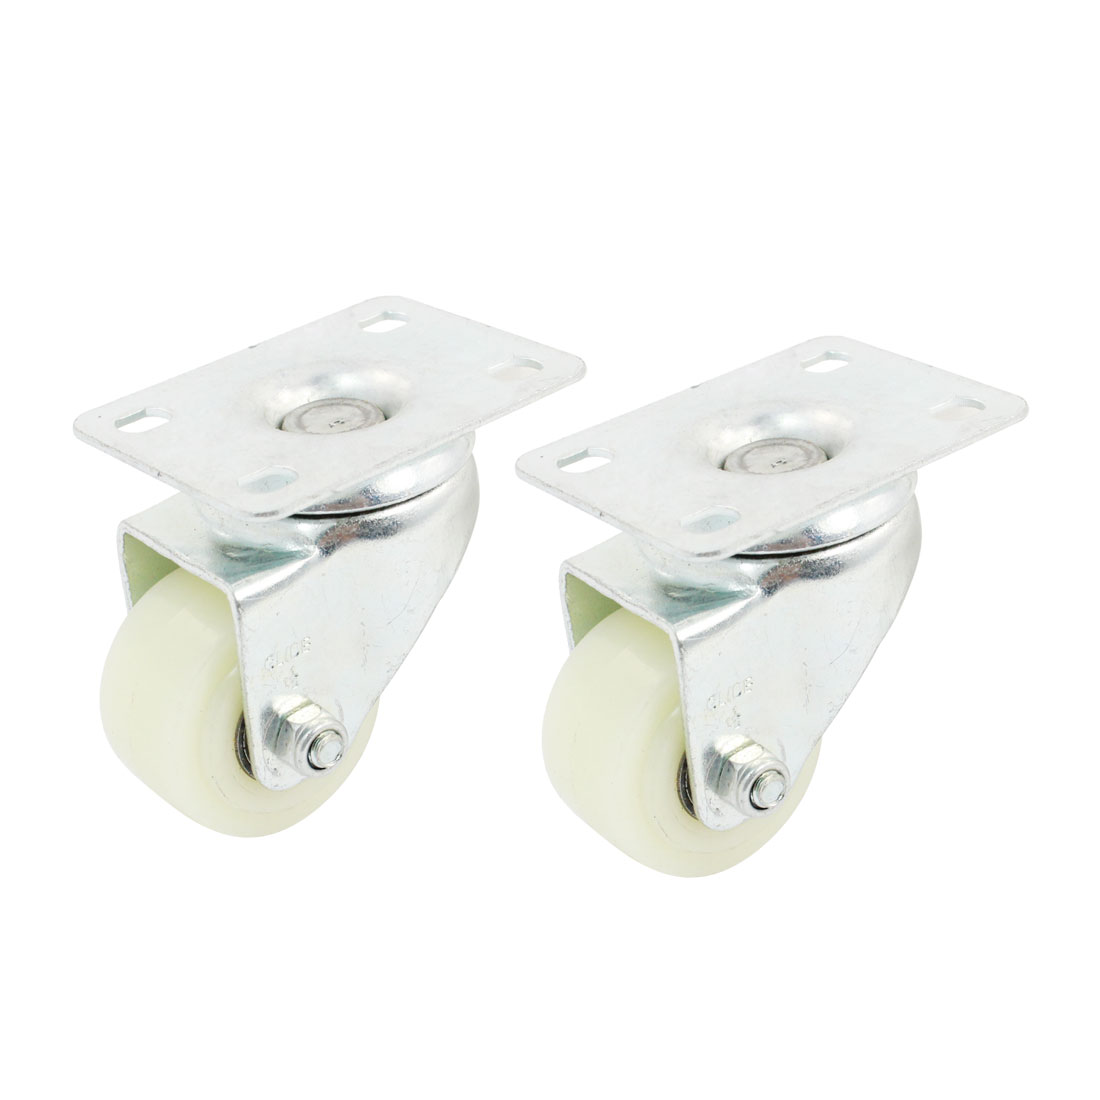 "Trolley 1.5"" Round Single Wheel Rectangle Top Plate 360 Degree Rotation Swivel Caster 2pcs"